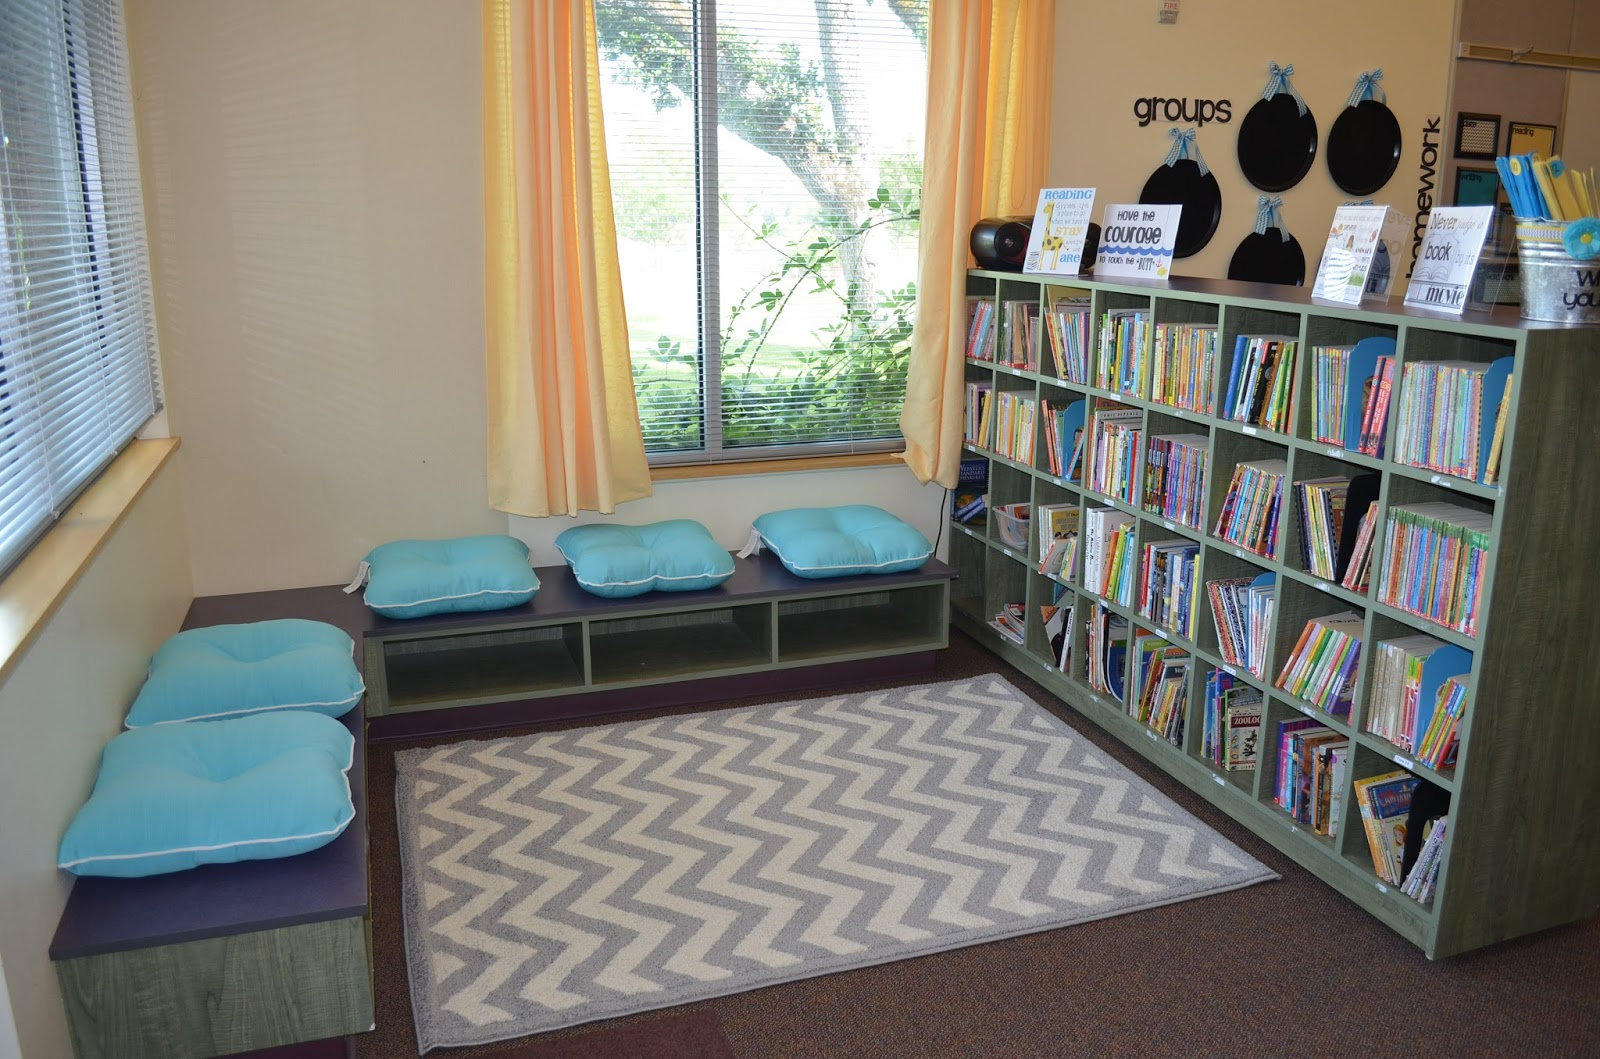 Classroom Library Ideas ~ Dandelions and dragonflies an oregon classroom reveal